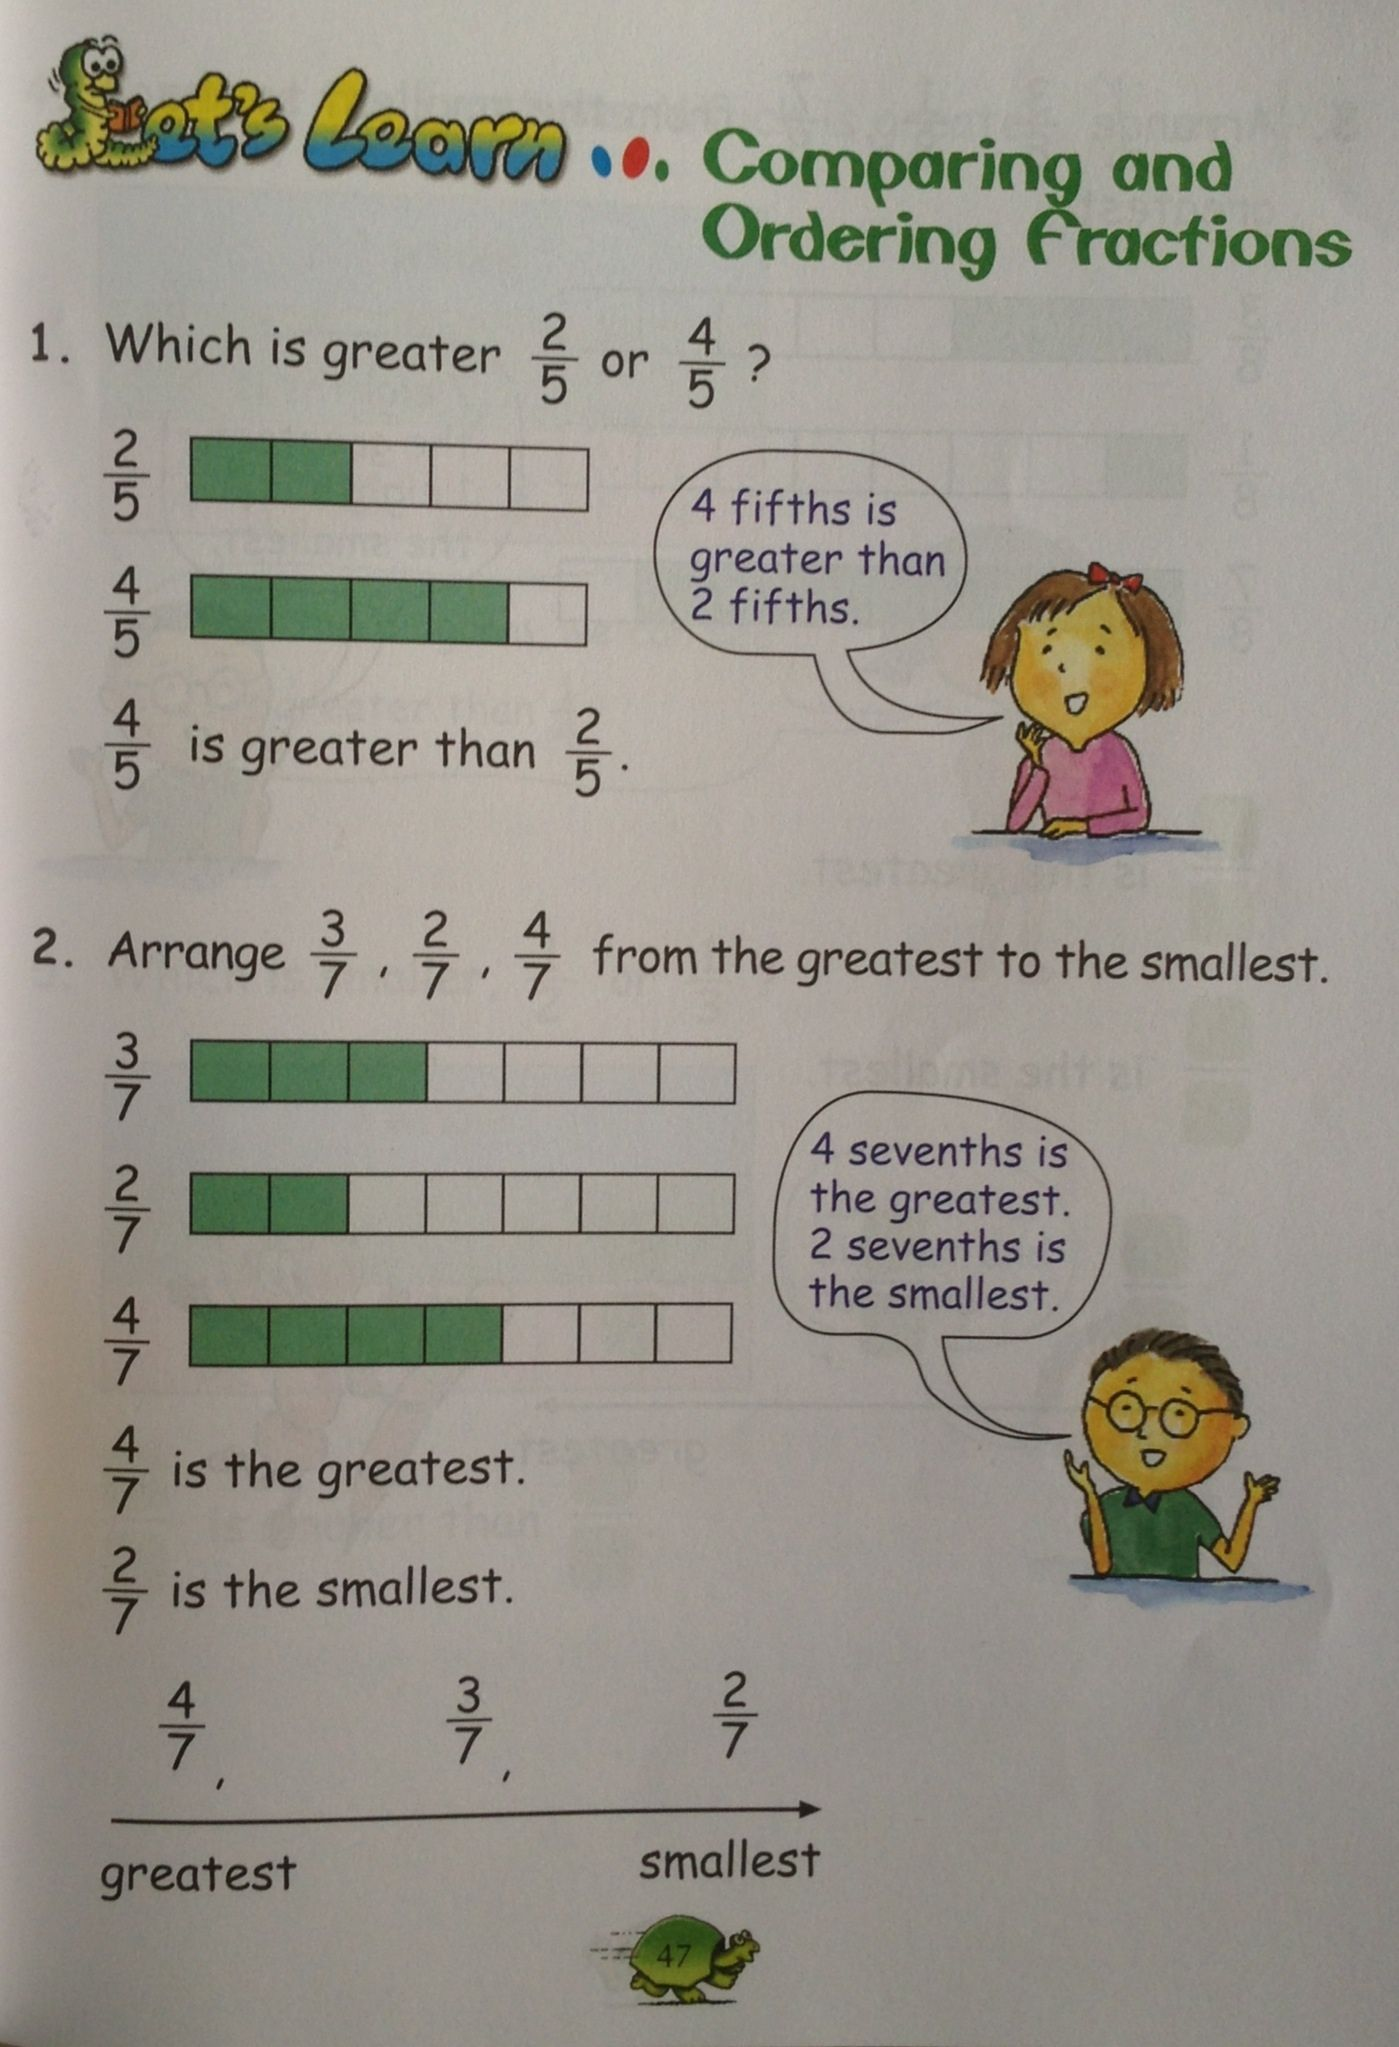 Learning Fractions Via Models A Grade 2 Textbook Example